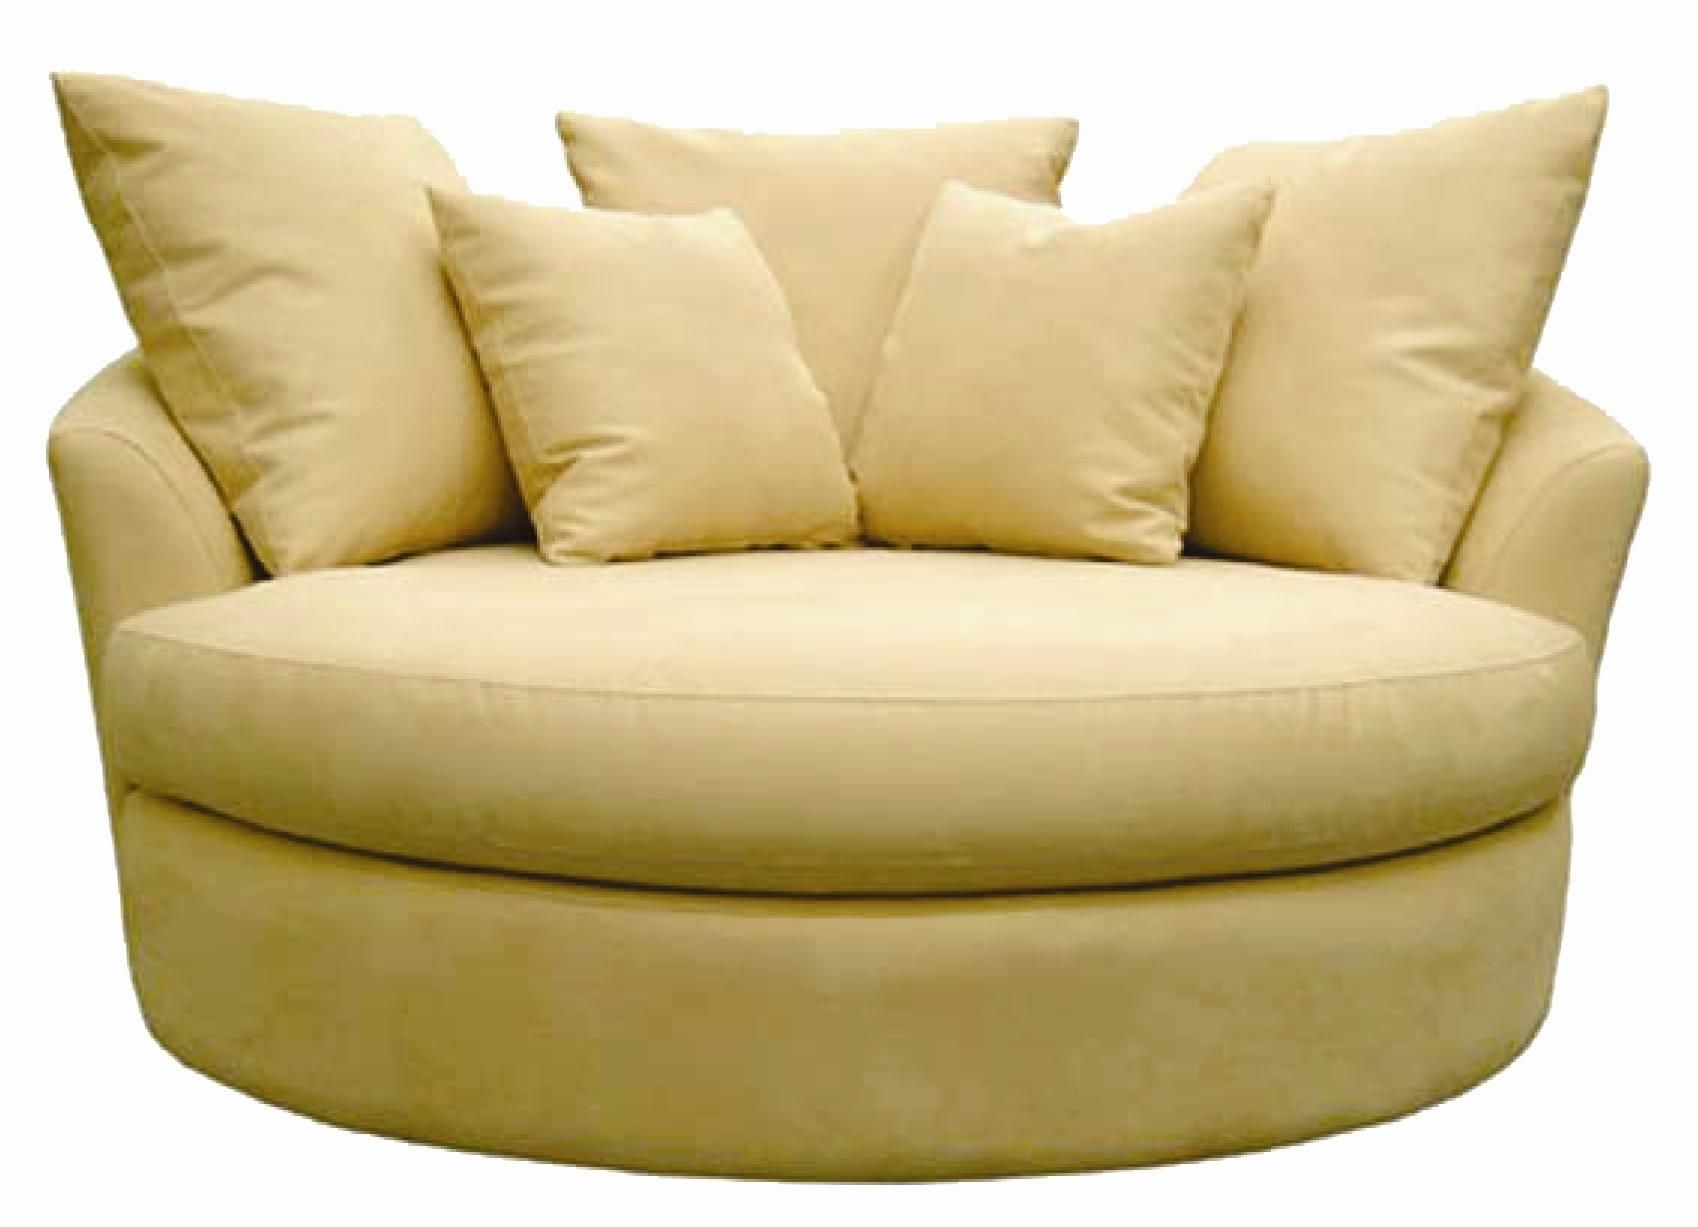 Upholstered Round Swivel Chairs For Living Room Beautiful Round Swivel